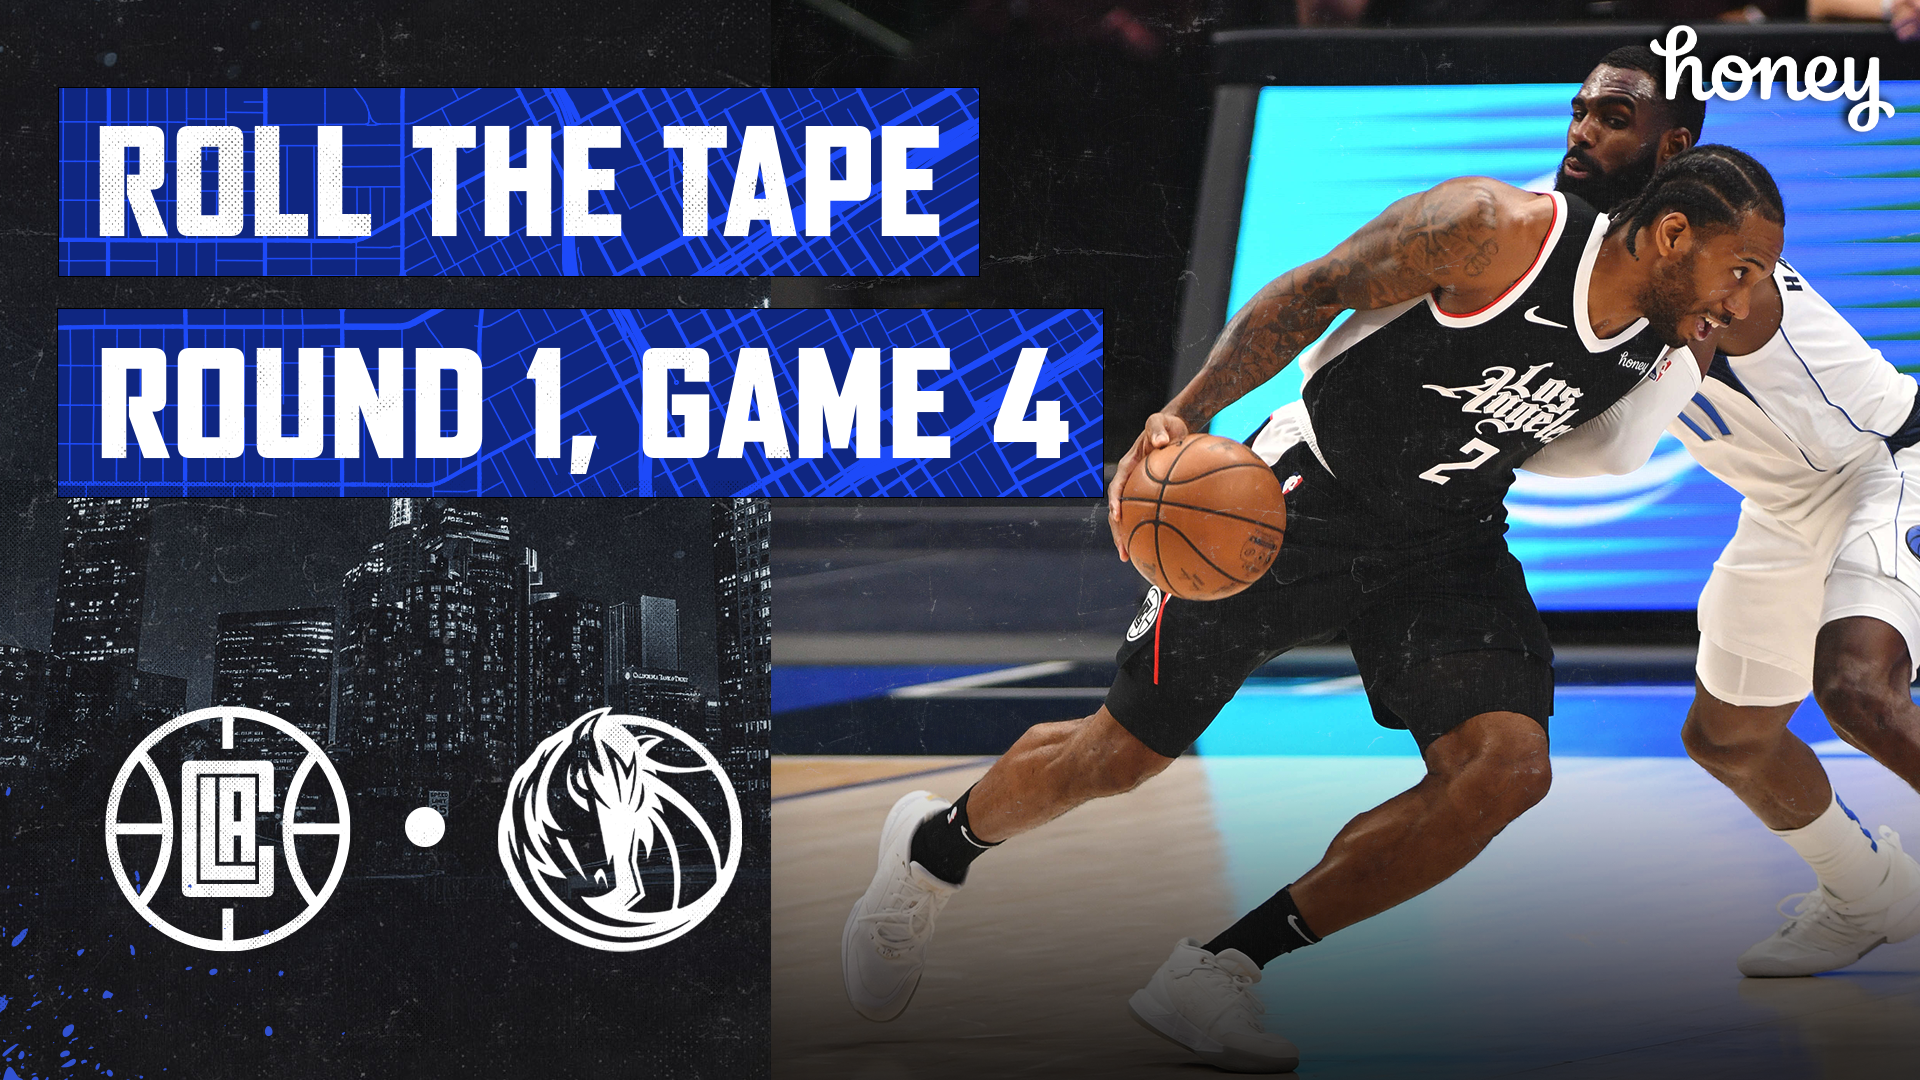 Roll The Tape | Clippers Lock Down Mavericks For Big Game 4 Win (5.30.21)